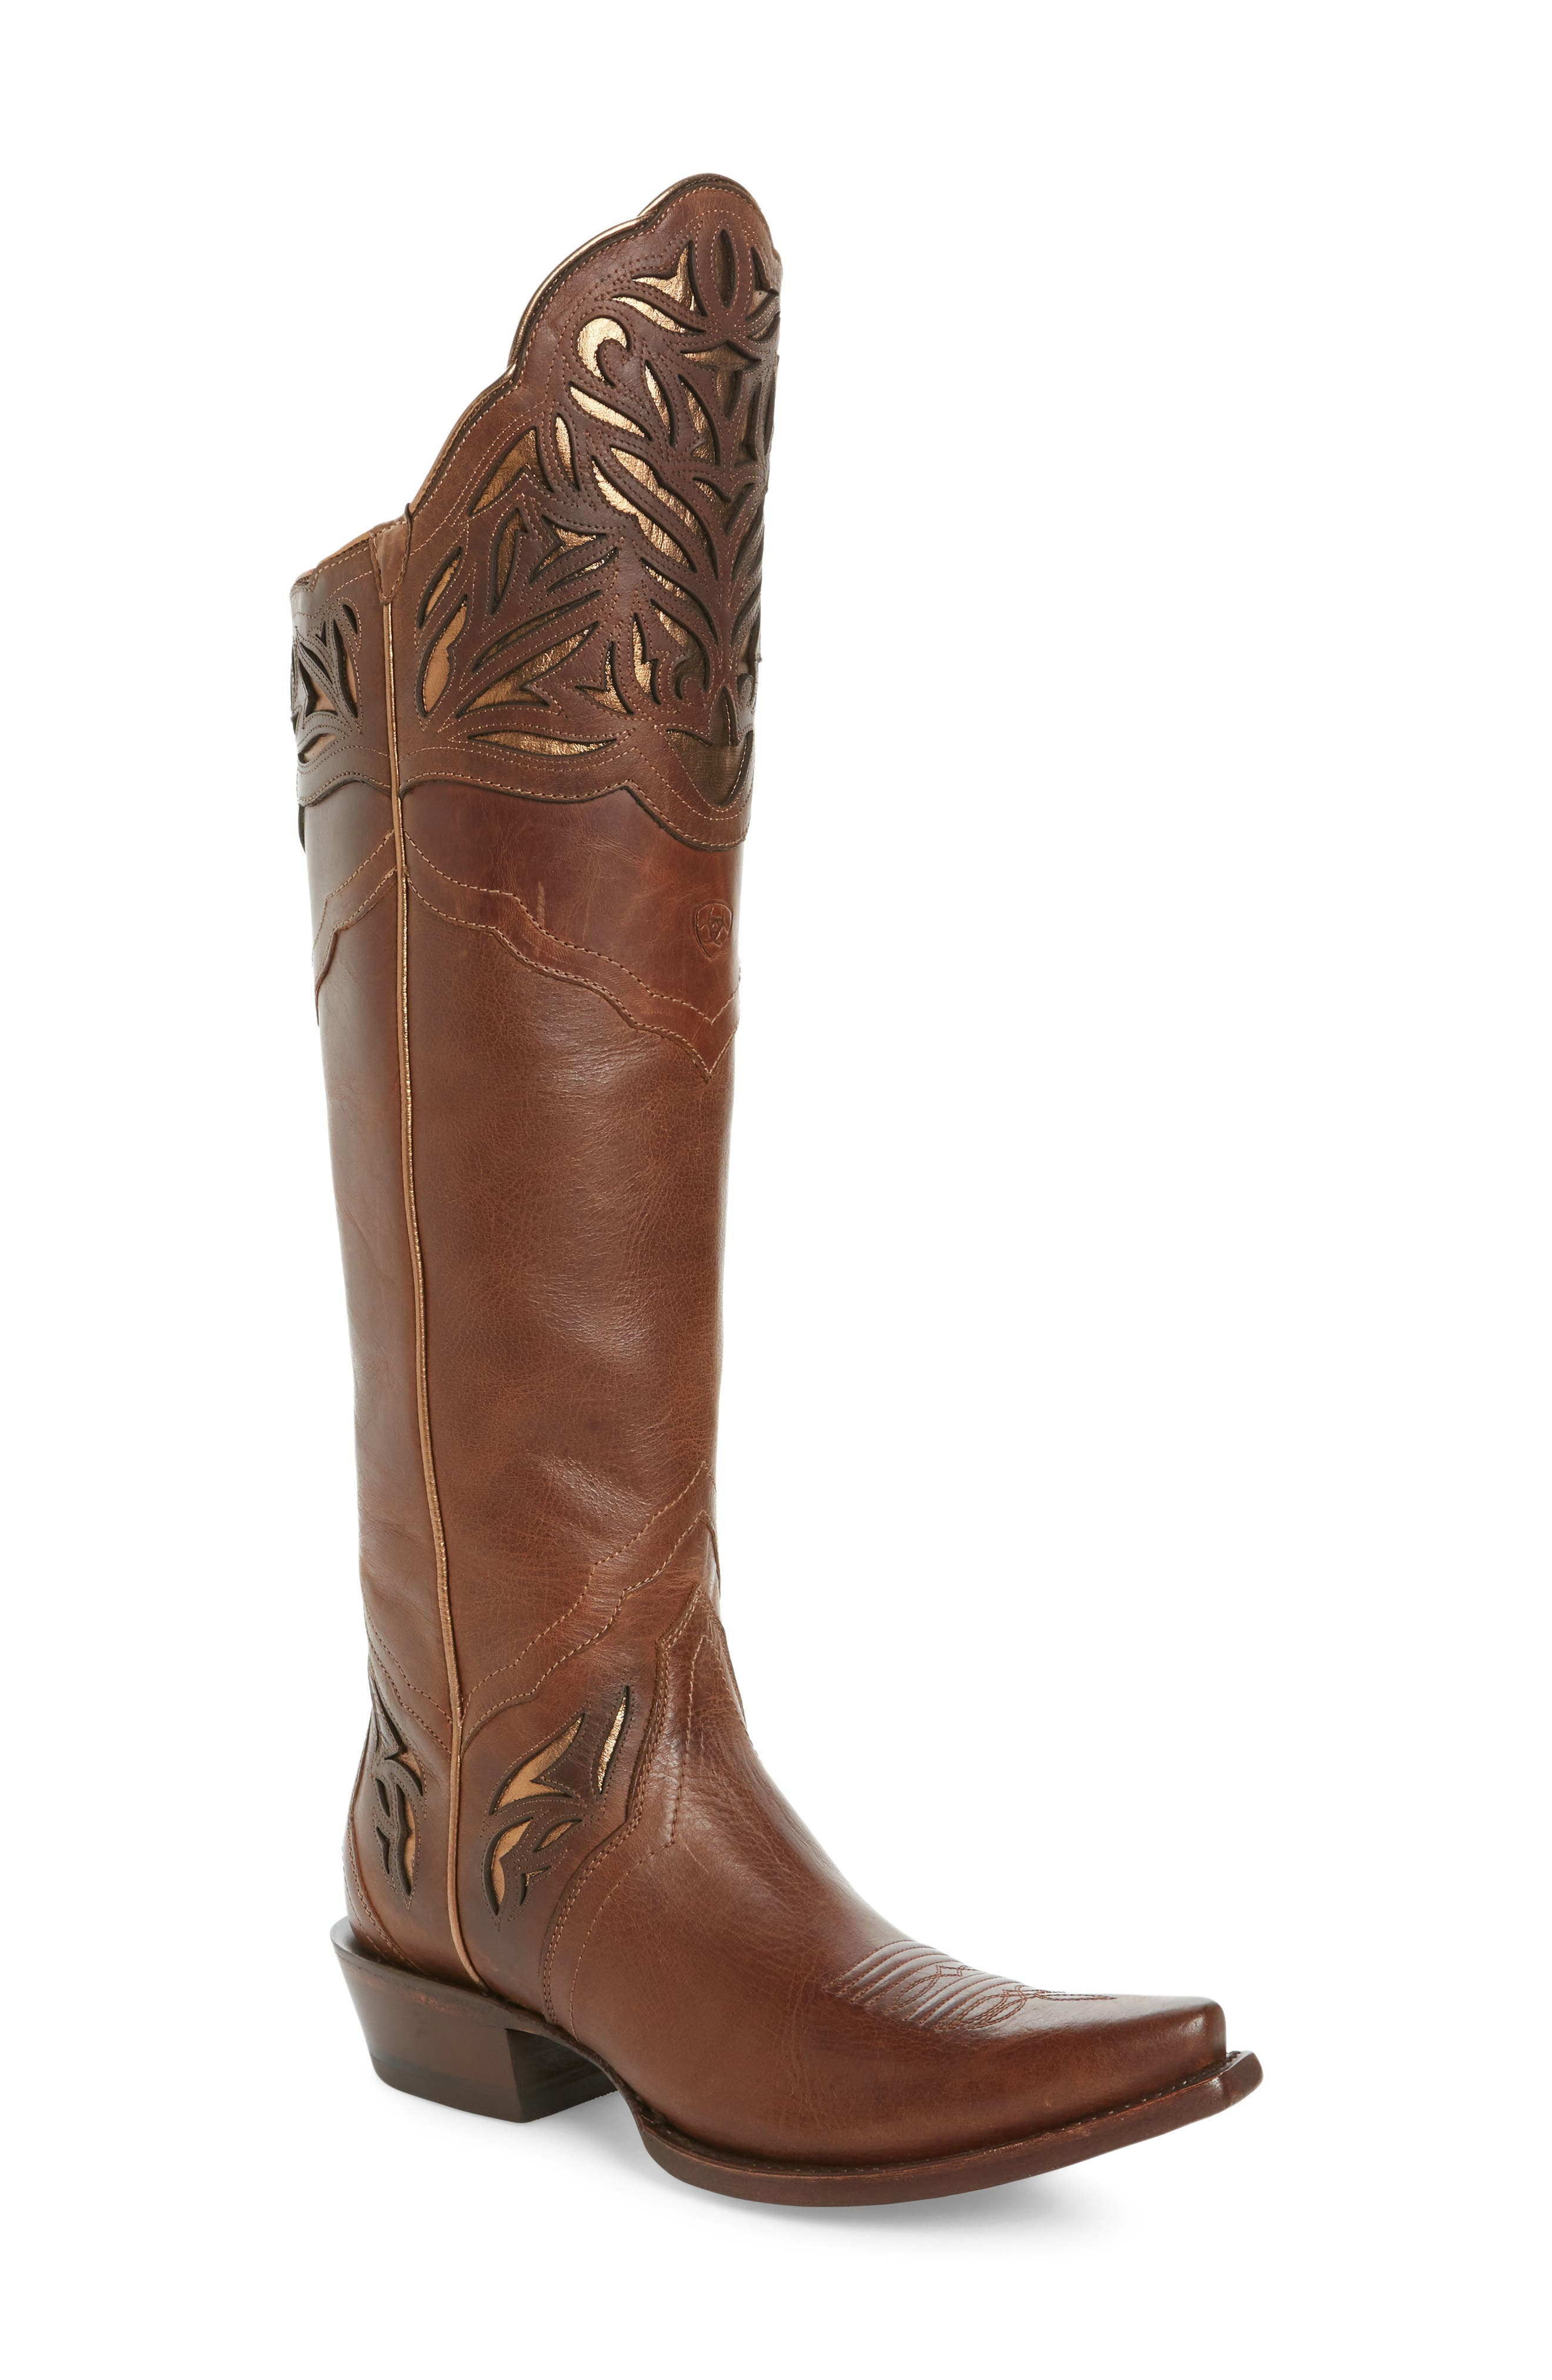 Chaparral Over the Knee Western Boot,                             Main thumbnail 1, color,                             200